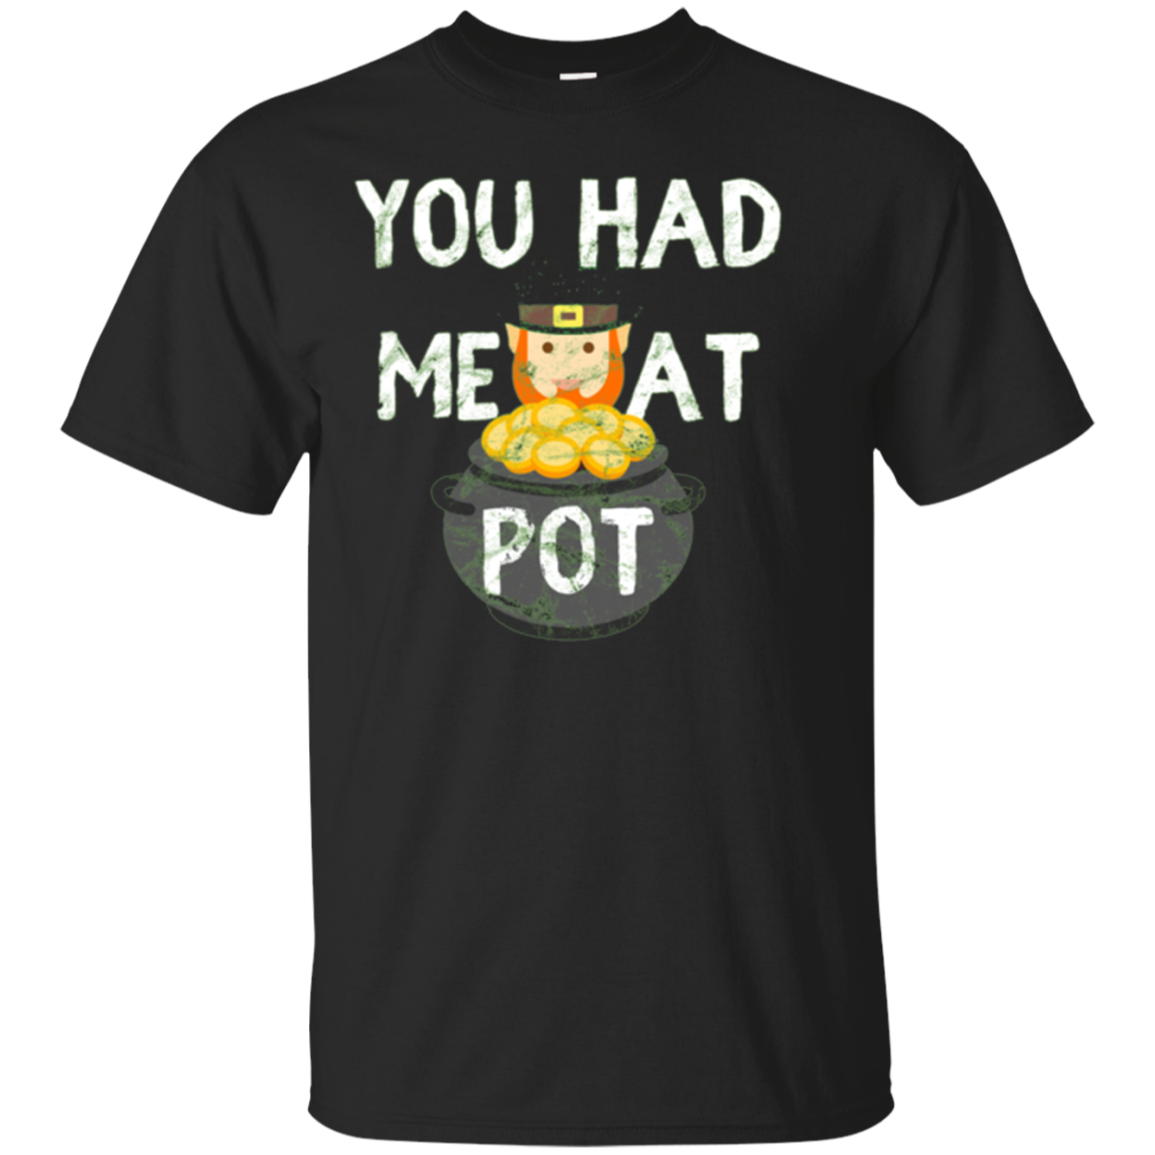 You Had Me At Pot | Funny St Patricks Day Shirt Adult Humor